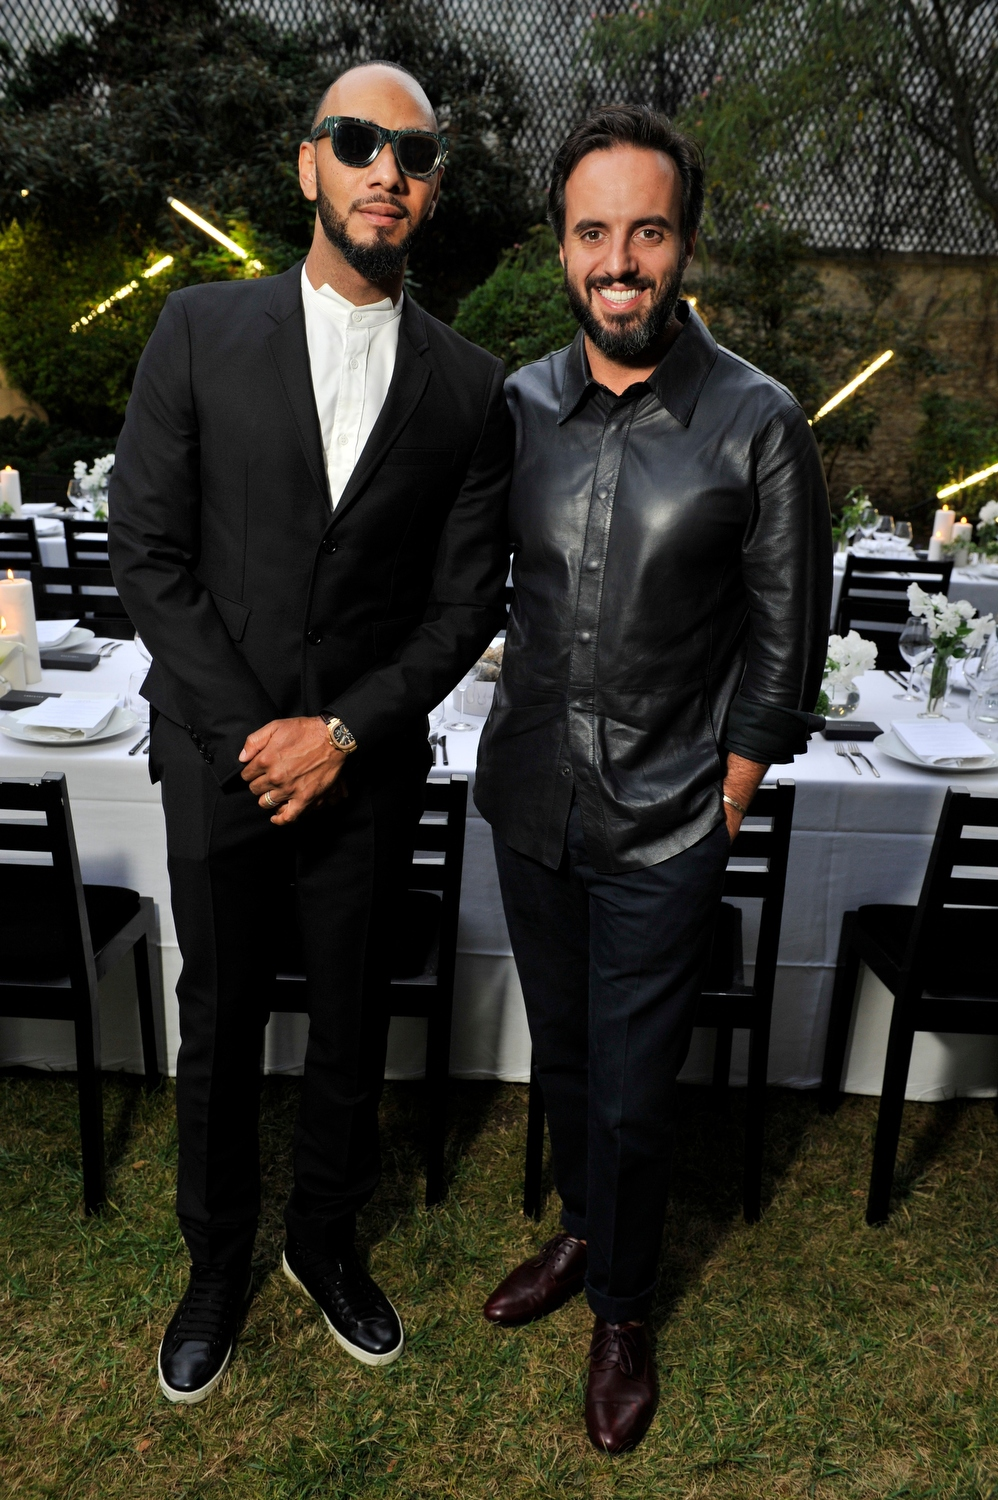 Farfetch Celebrate Fashion Week with Private Dinner